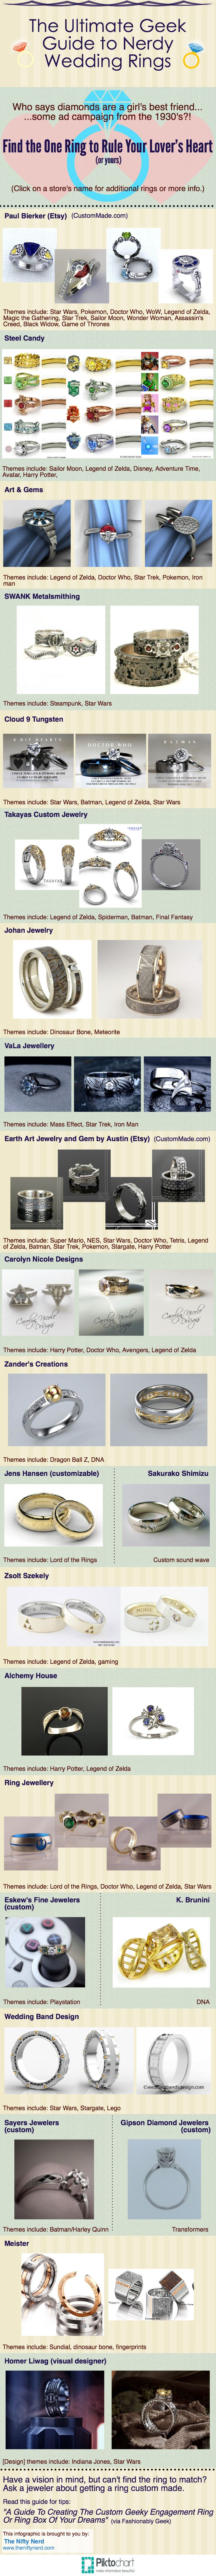 harry potter engagement ring harry potter wedding bands Geek Wedding Ring Guide interactive infographic via The Nifty Nerd Nerdy engagement